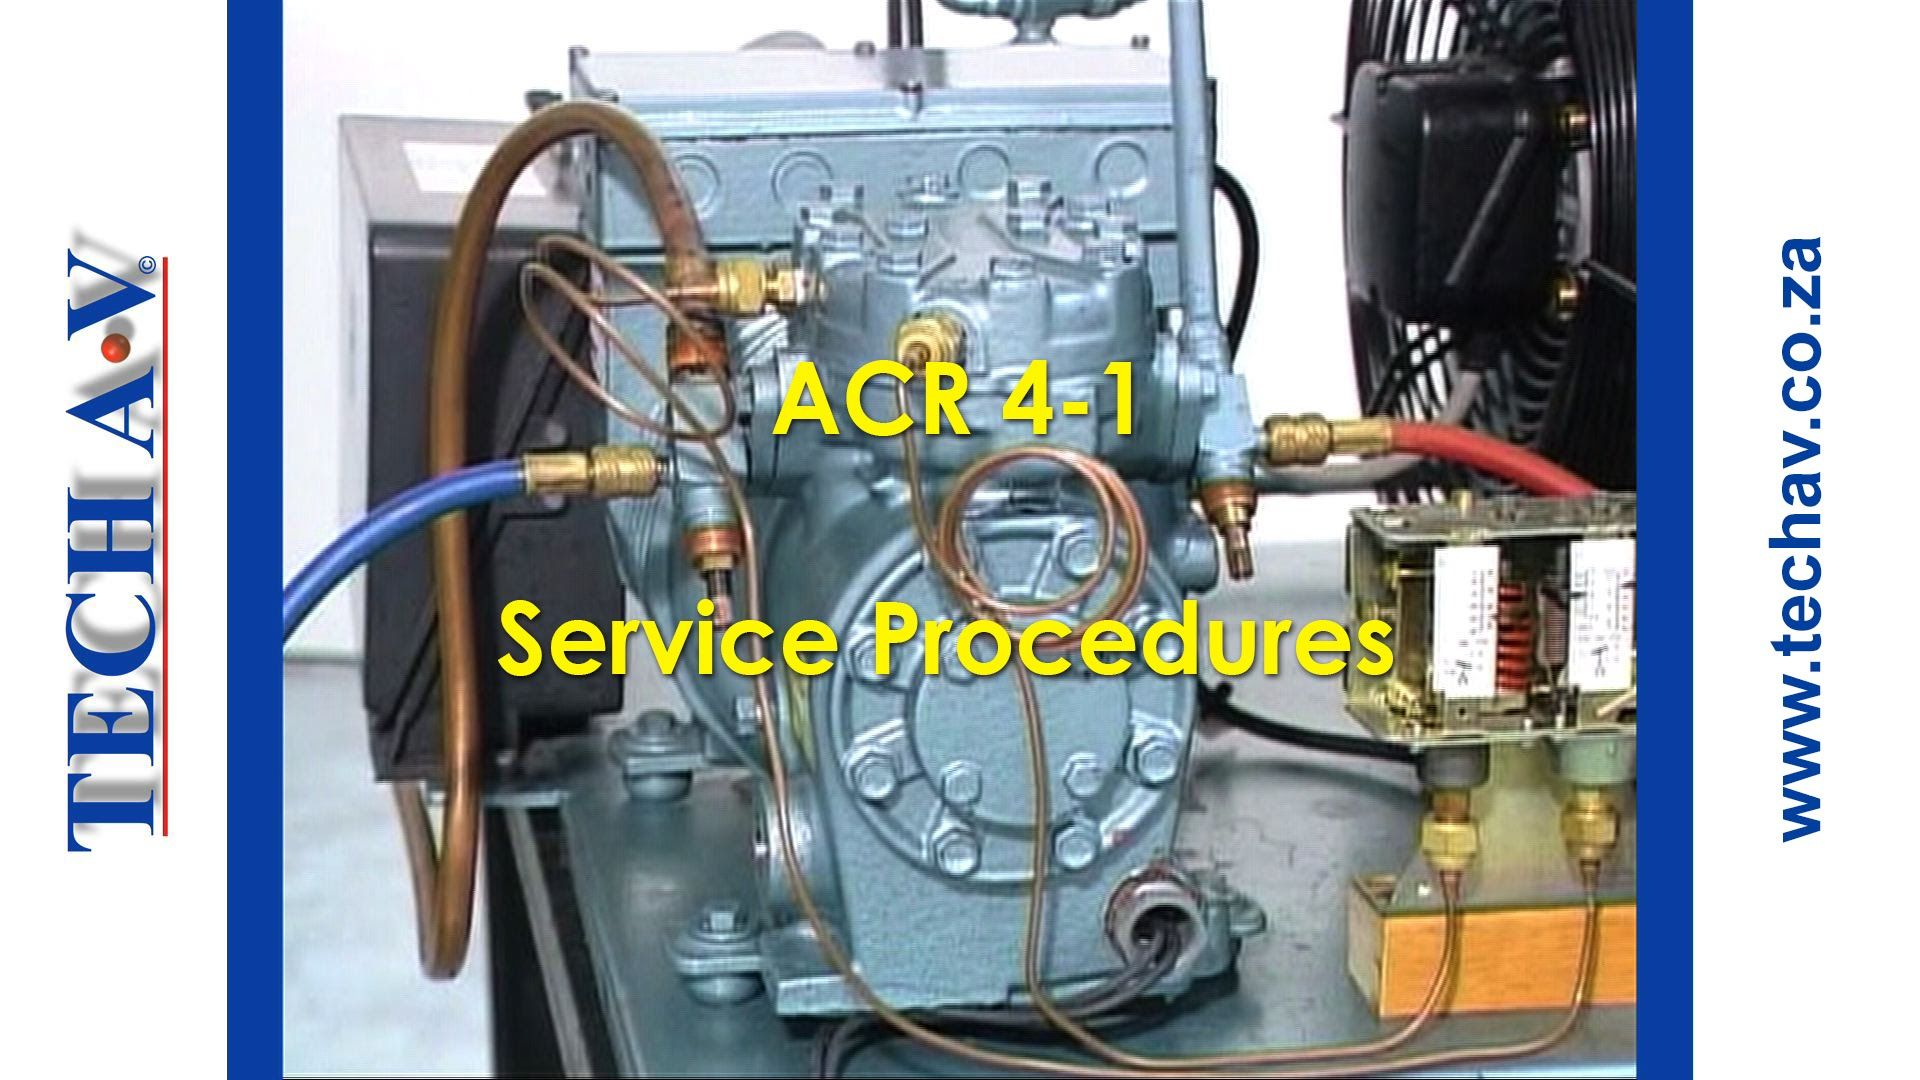 Air Conditioning & Refrigeration Part 17 of 20